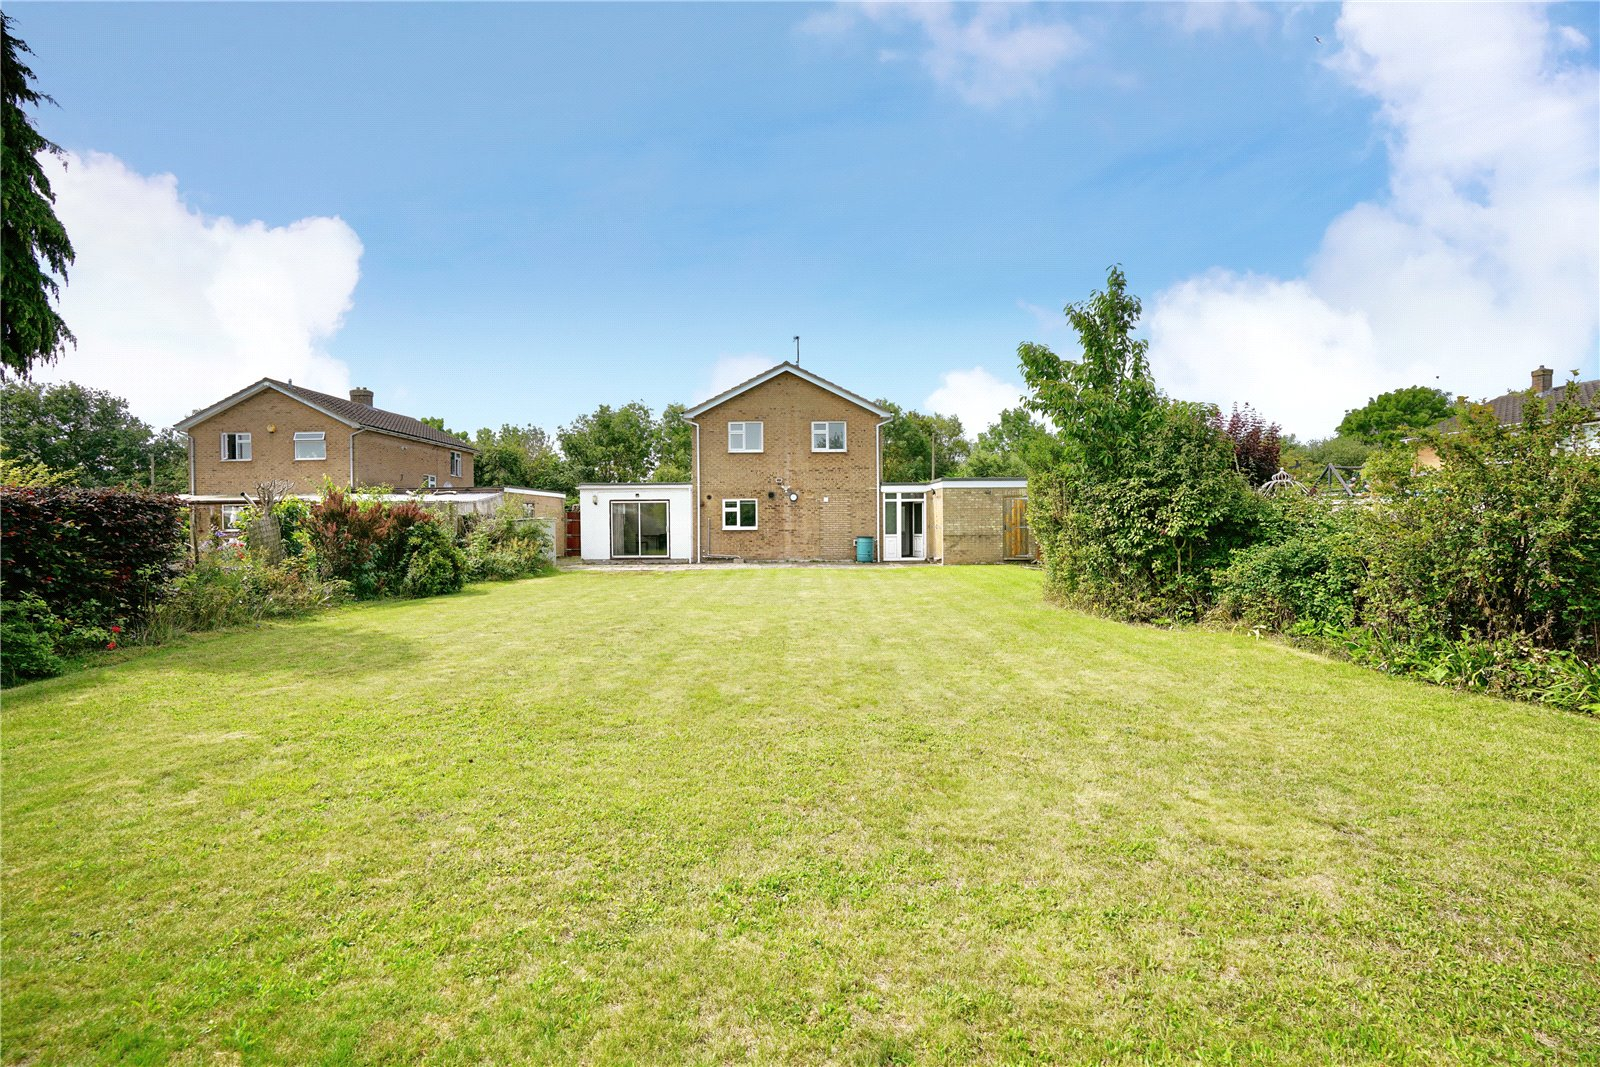 4 bed house for sale in Hemingford Grey, PE28 9ER 0